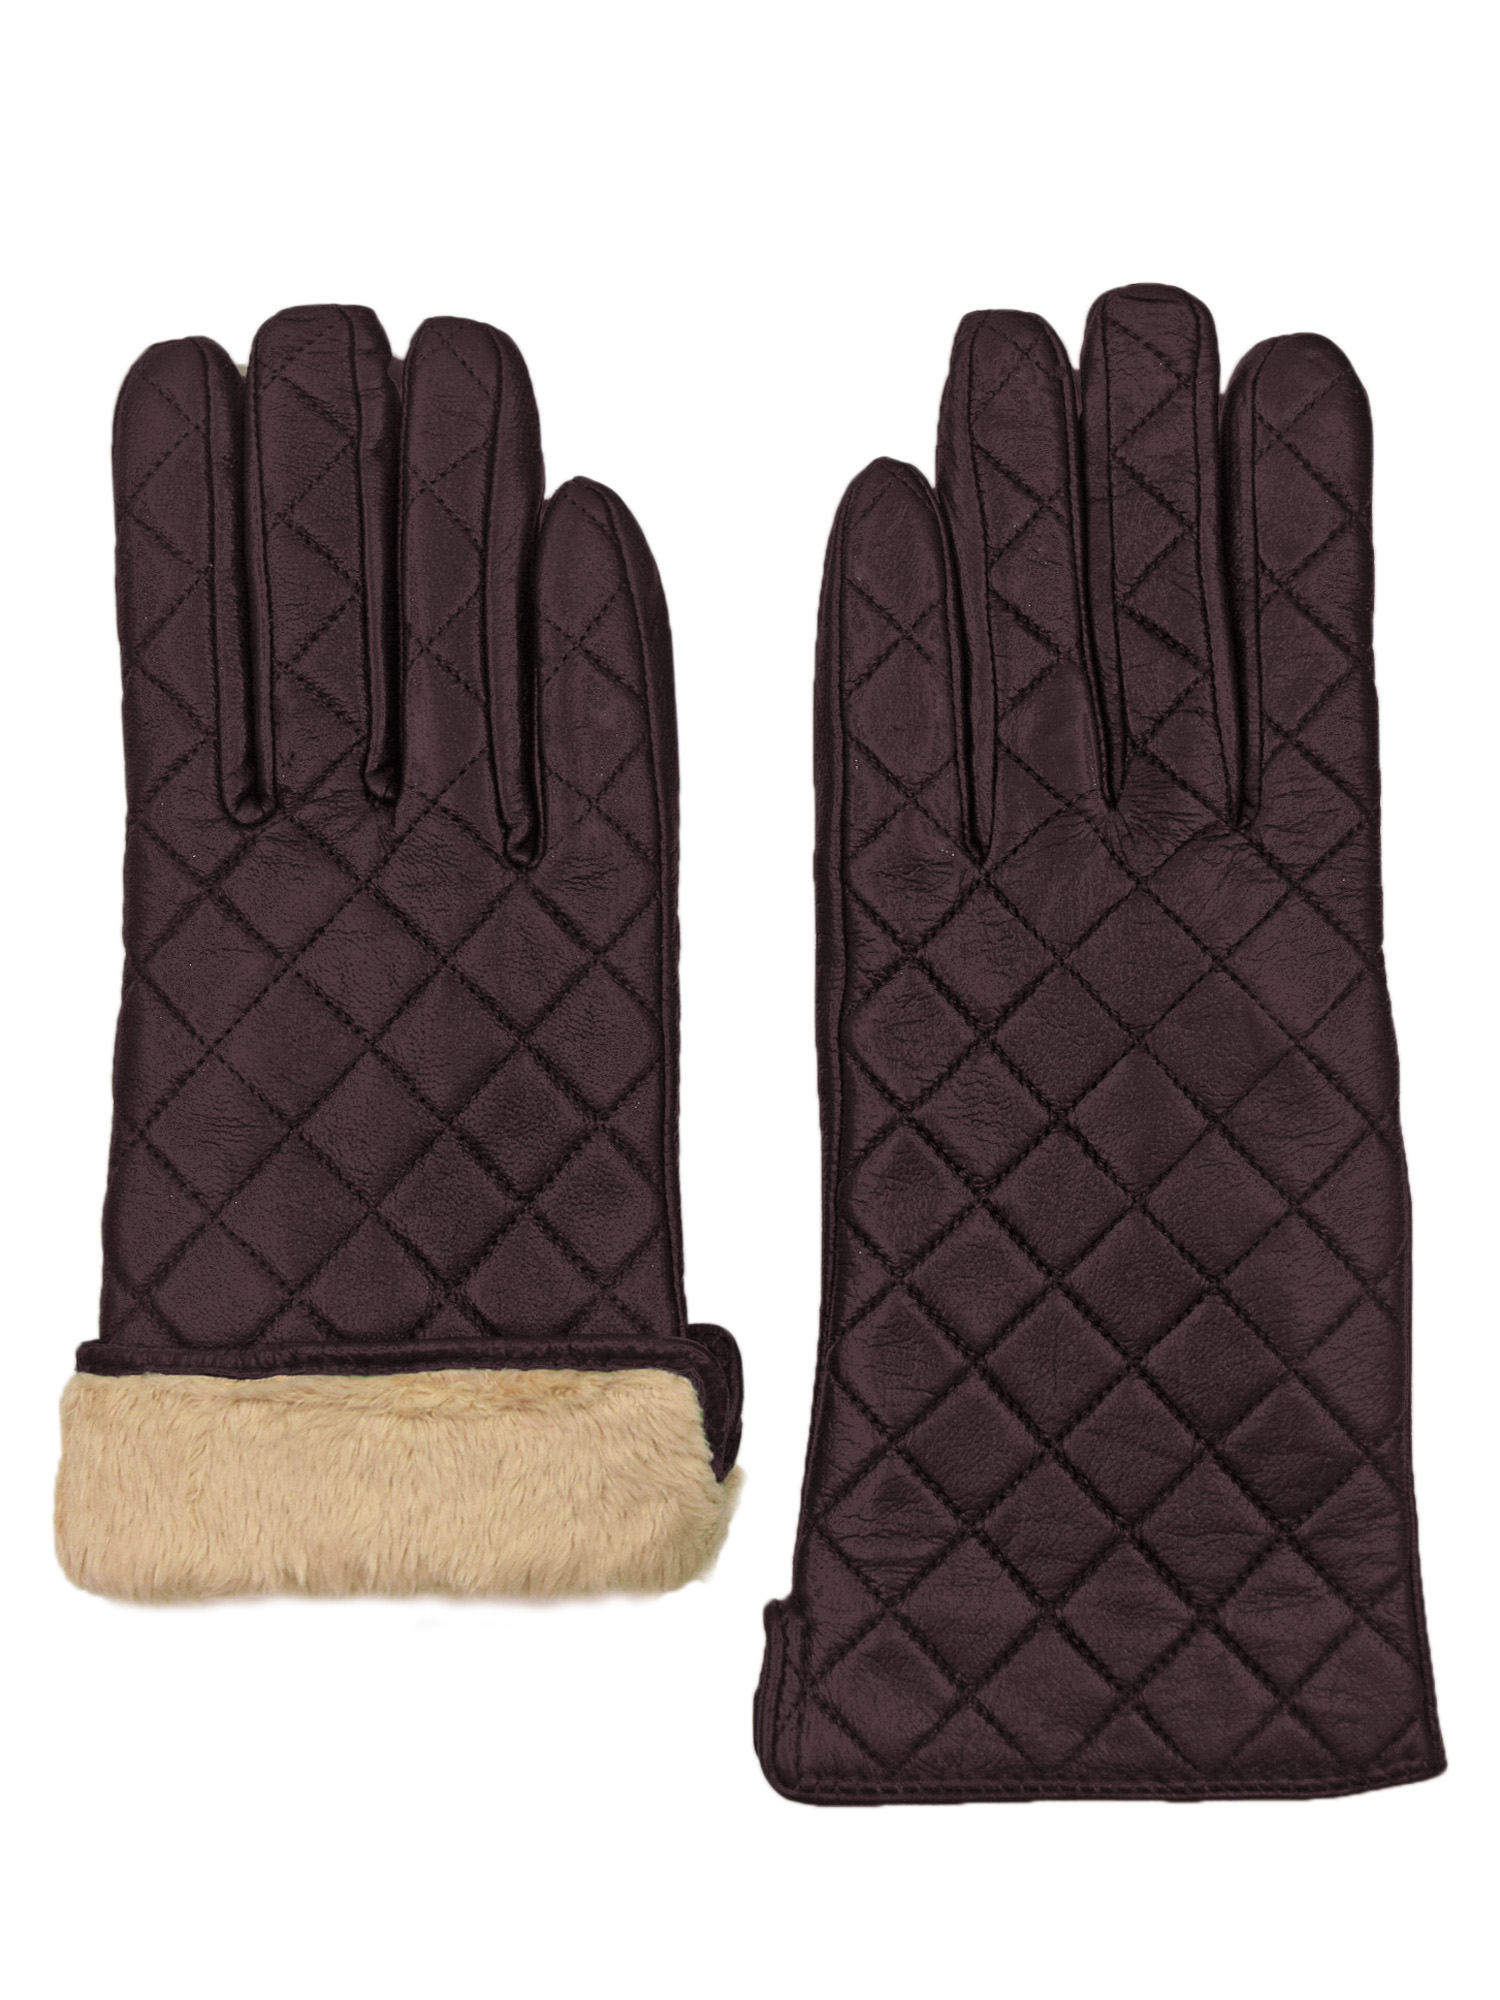 Giromy-Samoni-Womens-Warm-Winter-Leather-Quilted-Dress-Driving-Gloves-Brown thumbnail 6